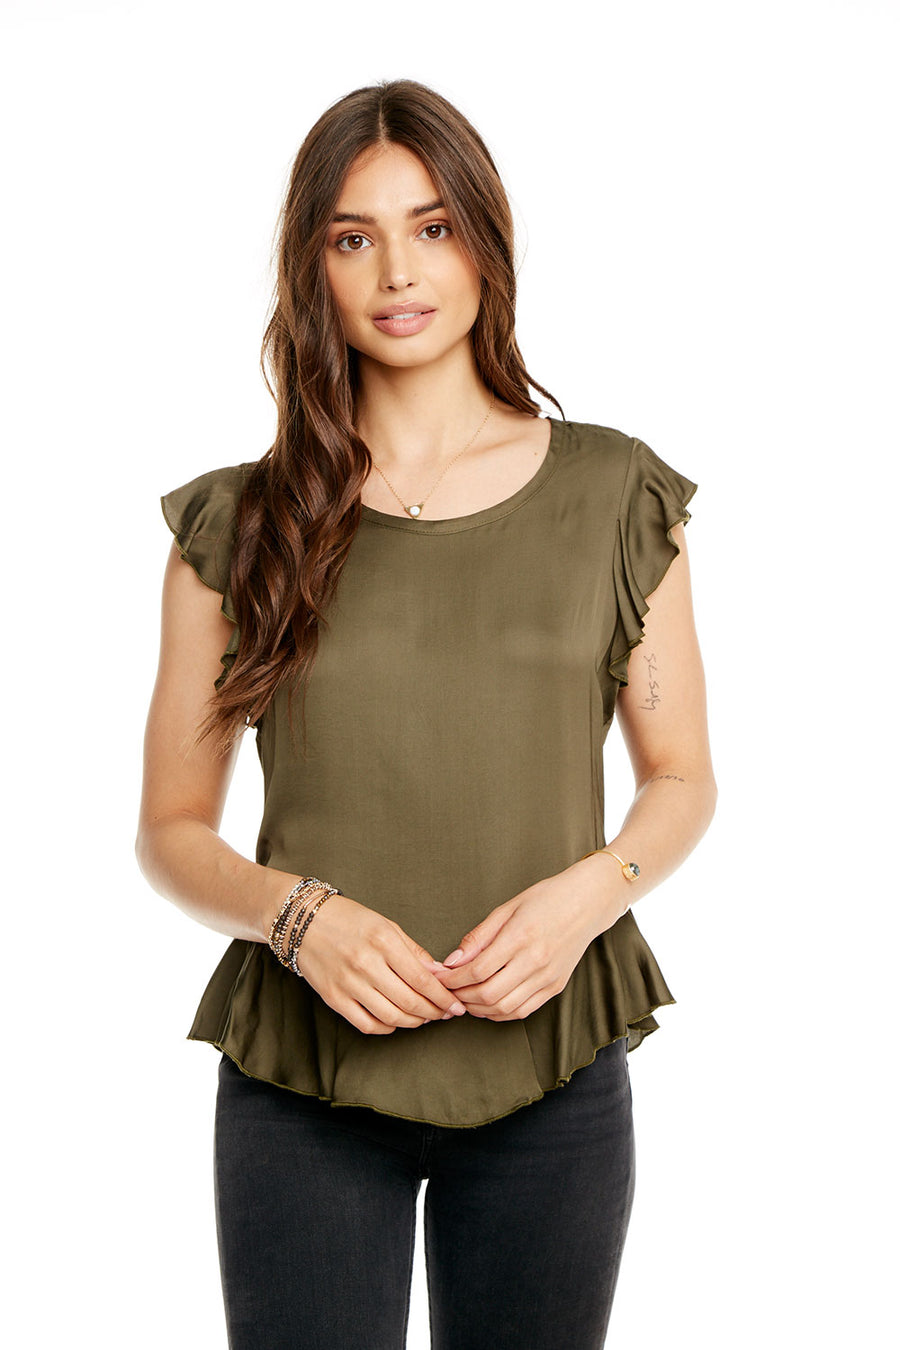 SILKY BASICS FLUTTER SLEEVE PEPLUM TEE, WOMENS, chaserbrand.com,chaser clothing,chaser apparel,chaser los angeles